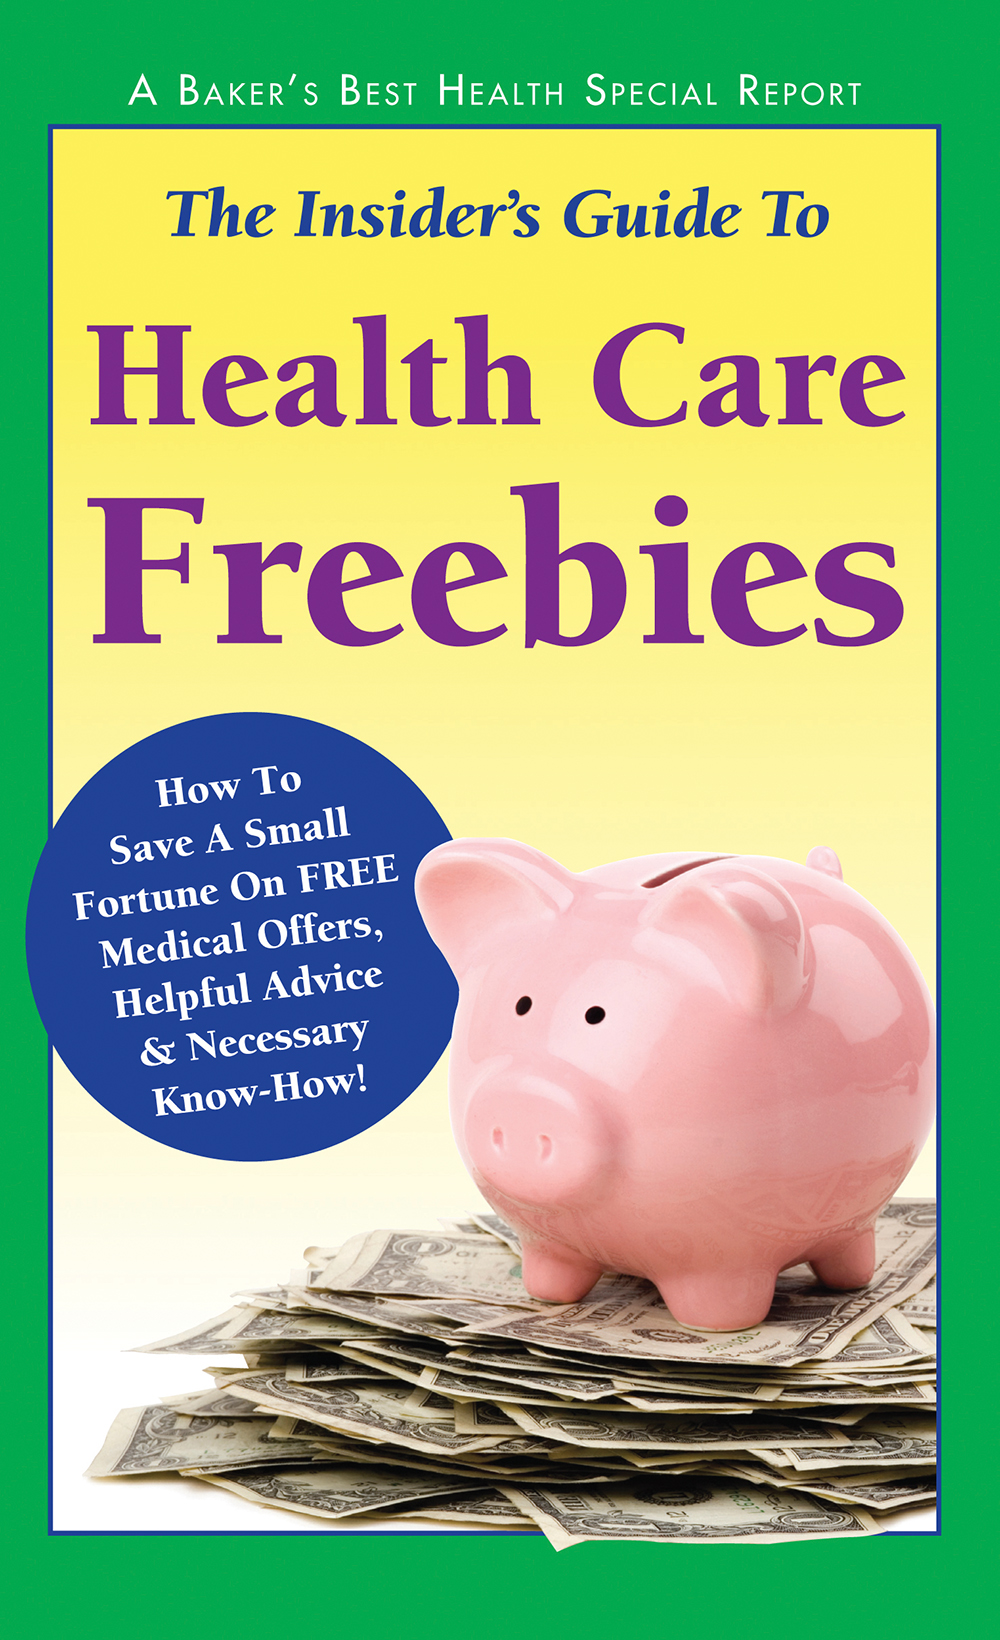 The Insider's Guide to Health Care Freebies